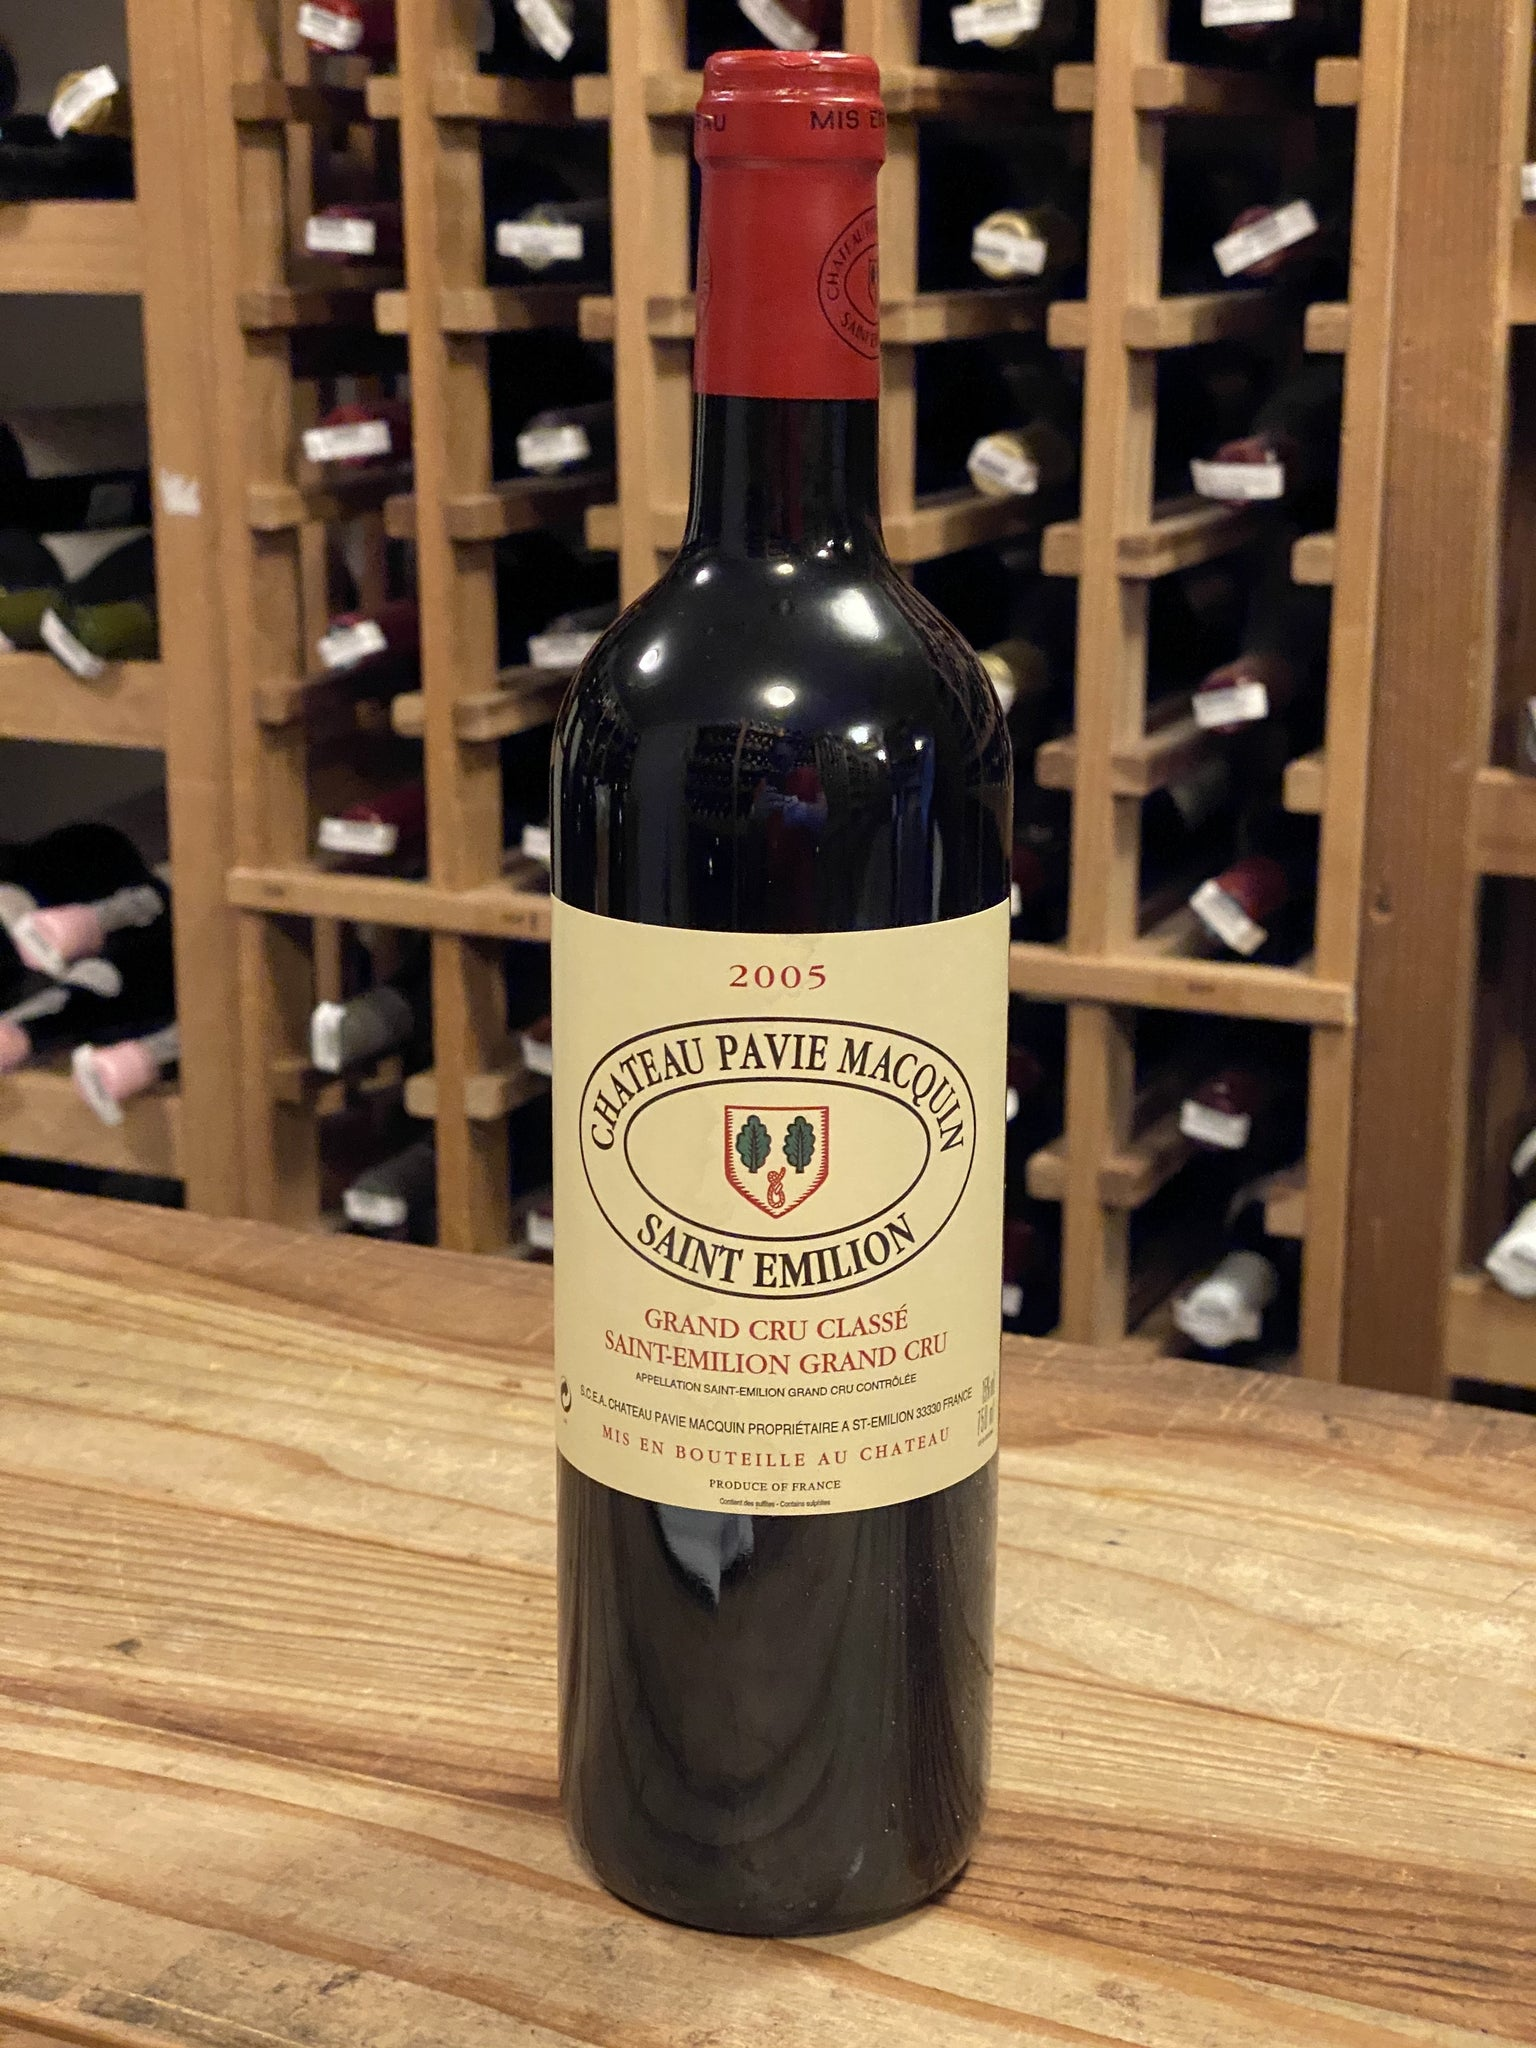 Château Pavie Macquin St. Émilion Grand Cru 2005